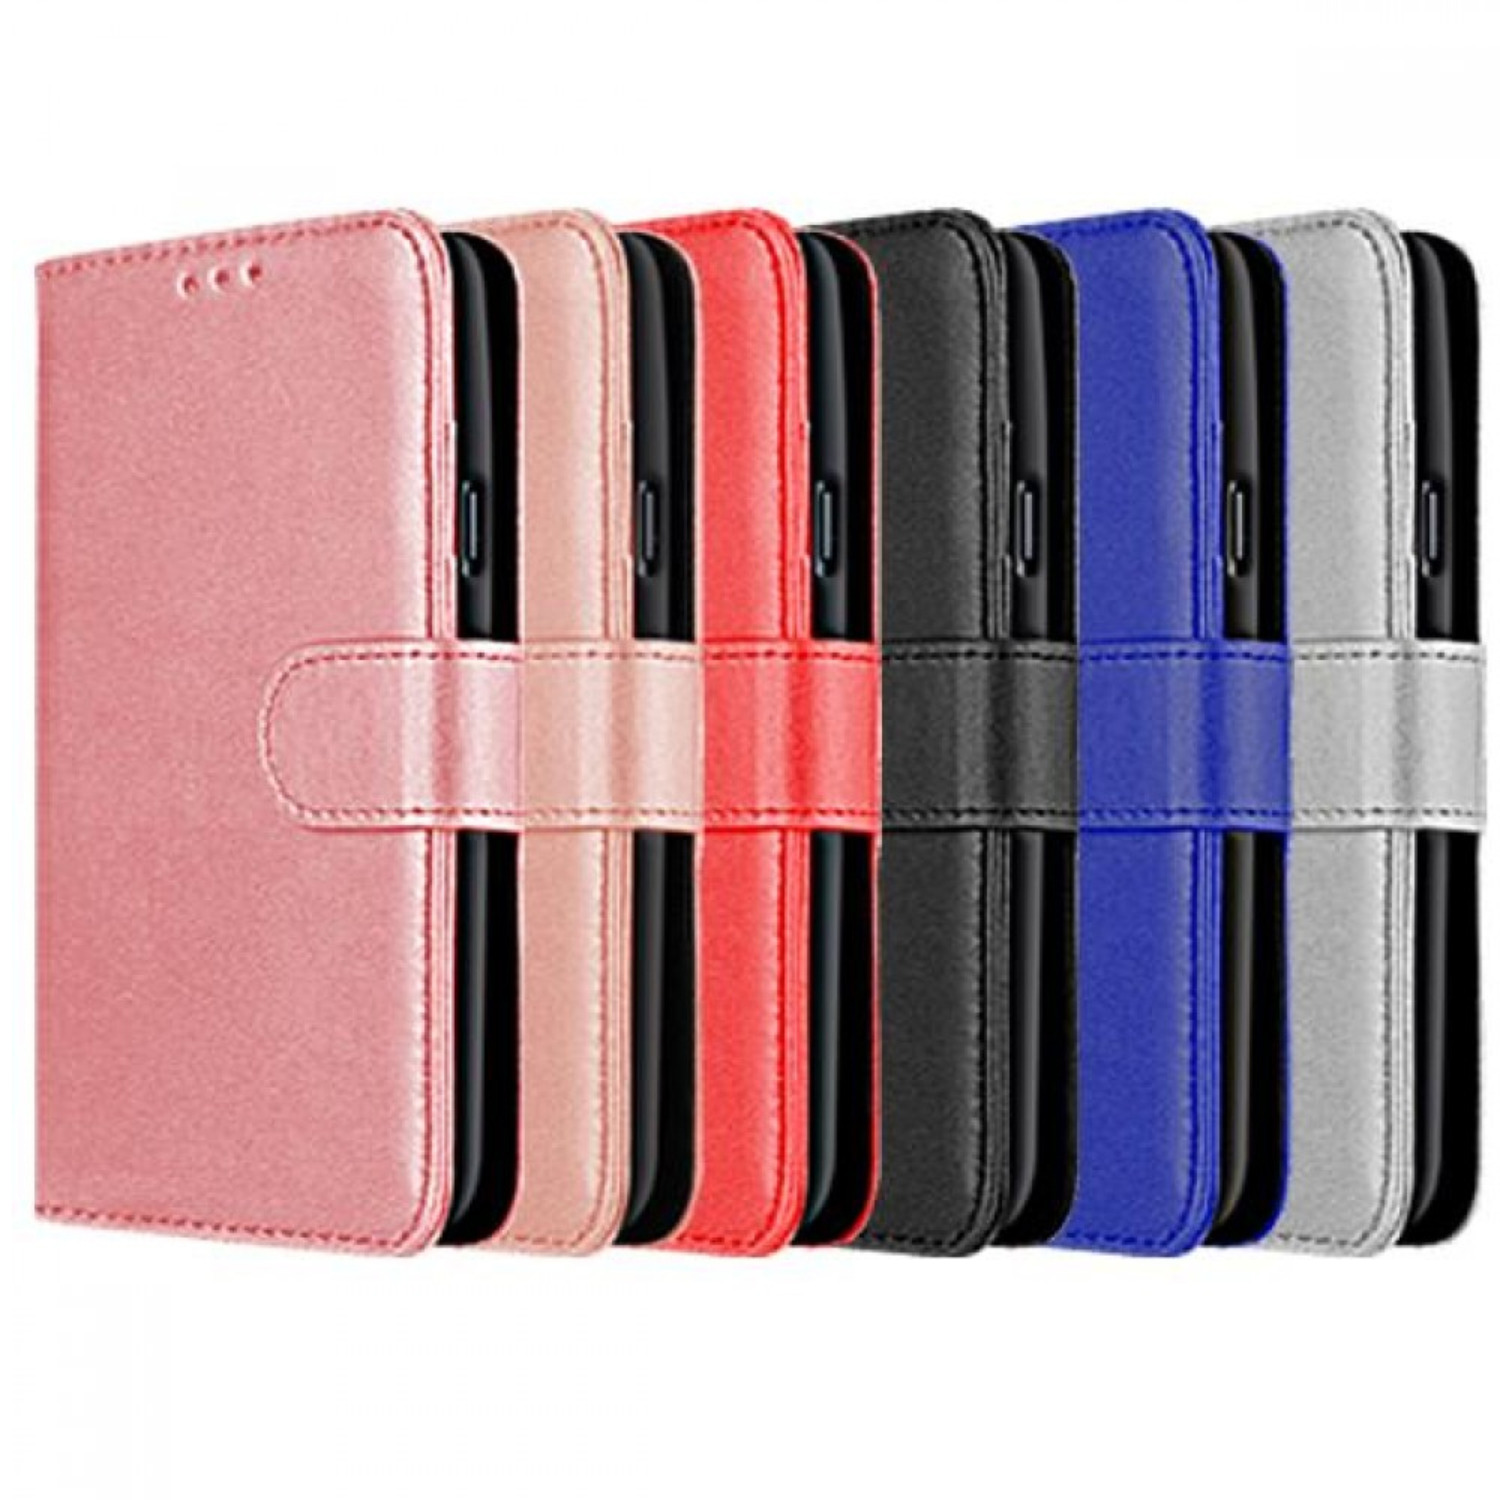 Samsung Galaxy A12 Compatible Book Case With Wallet Slot